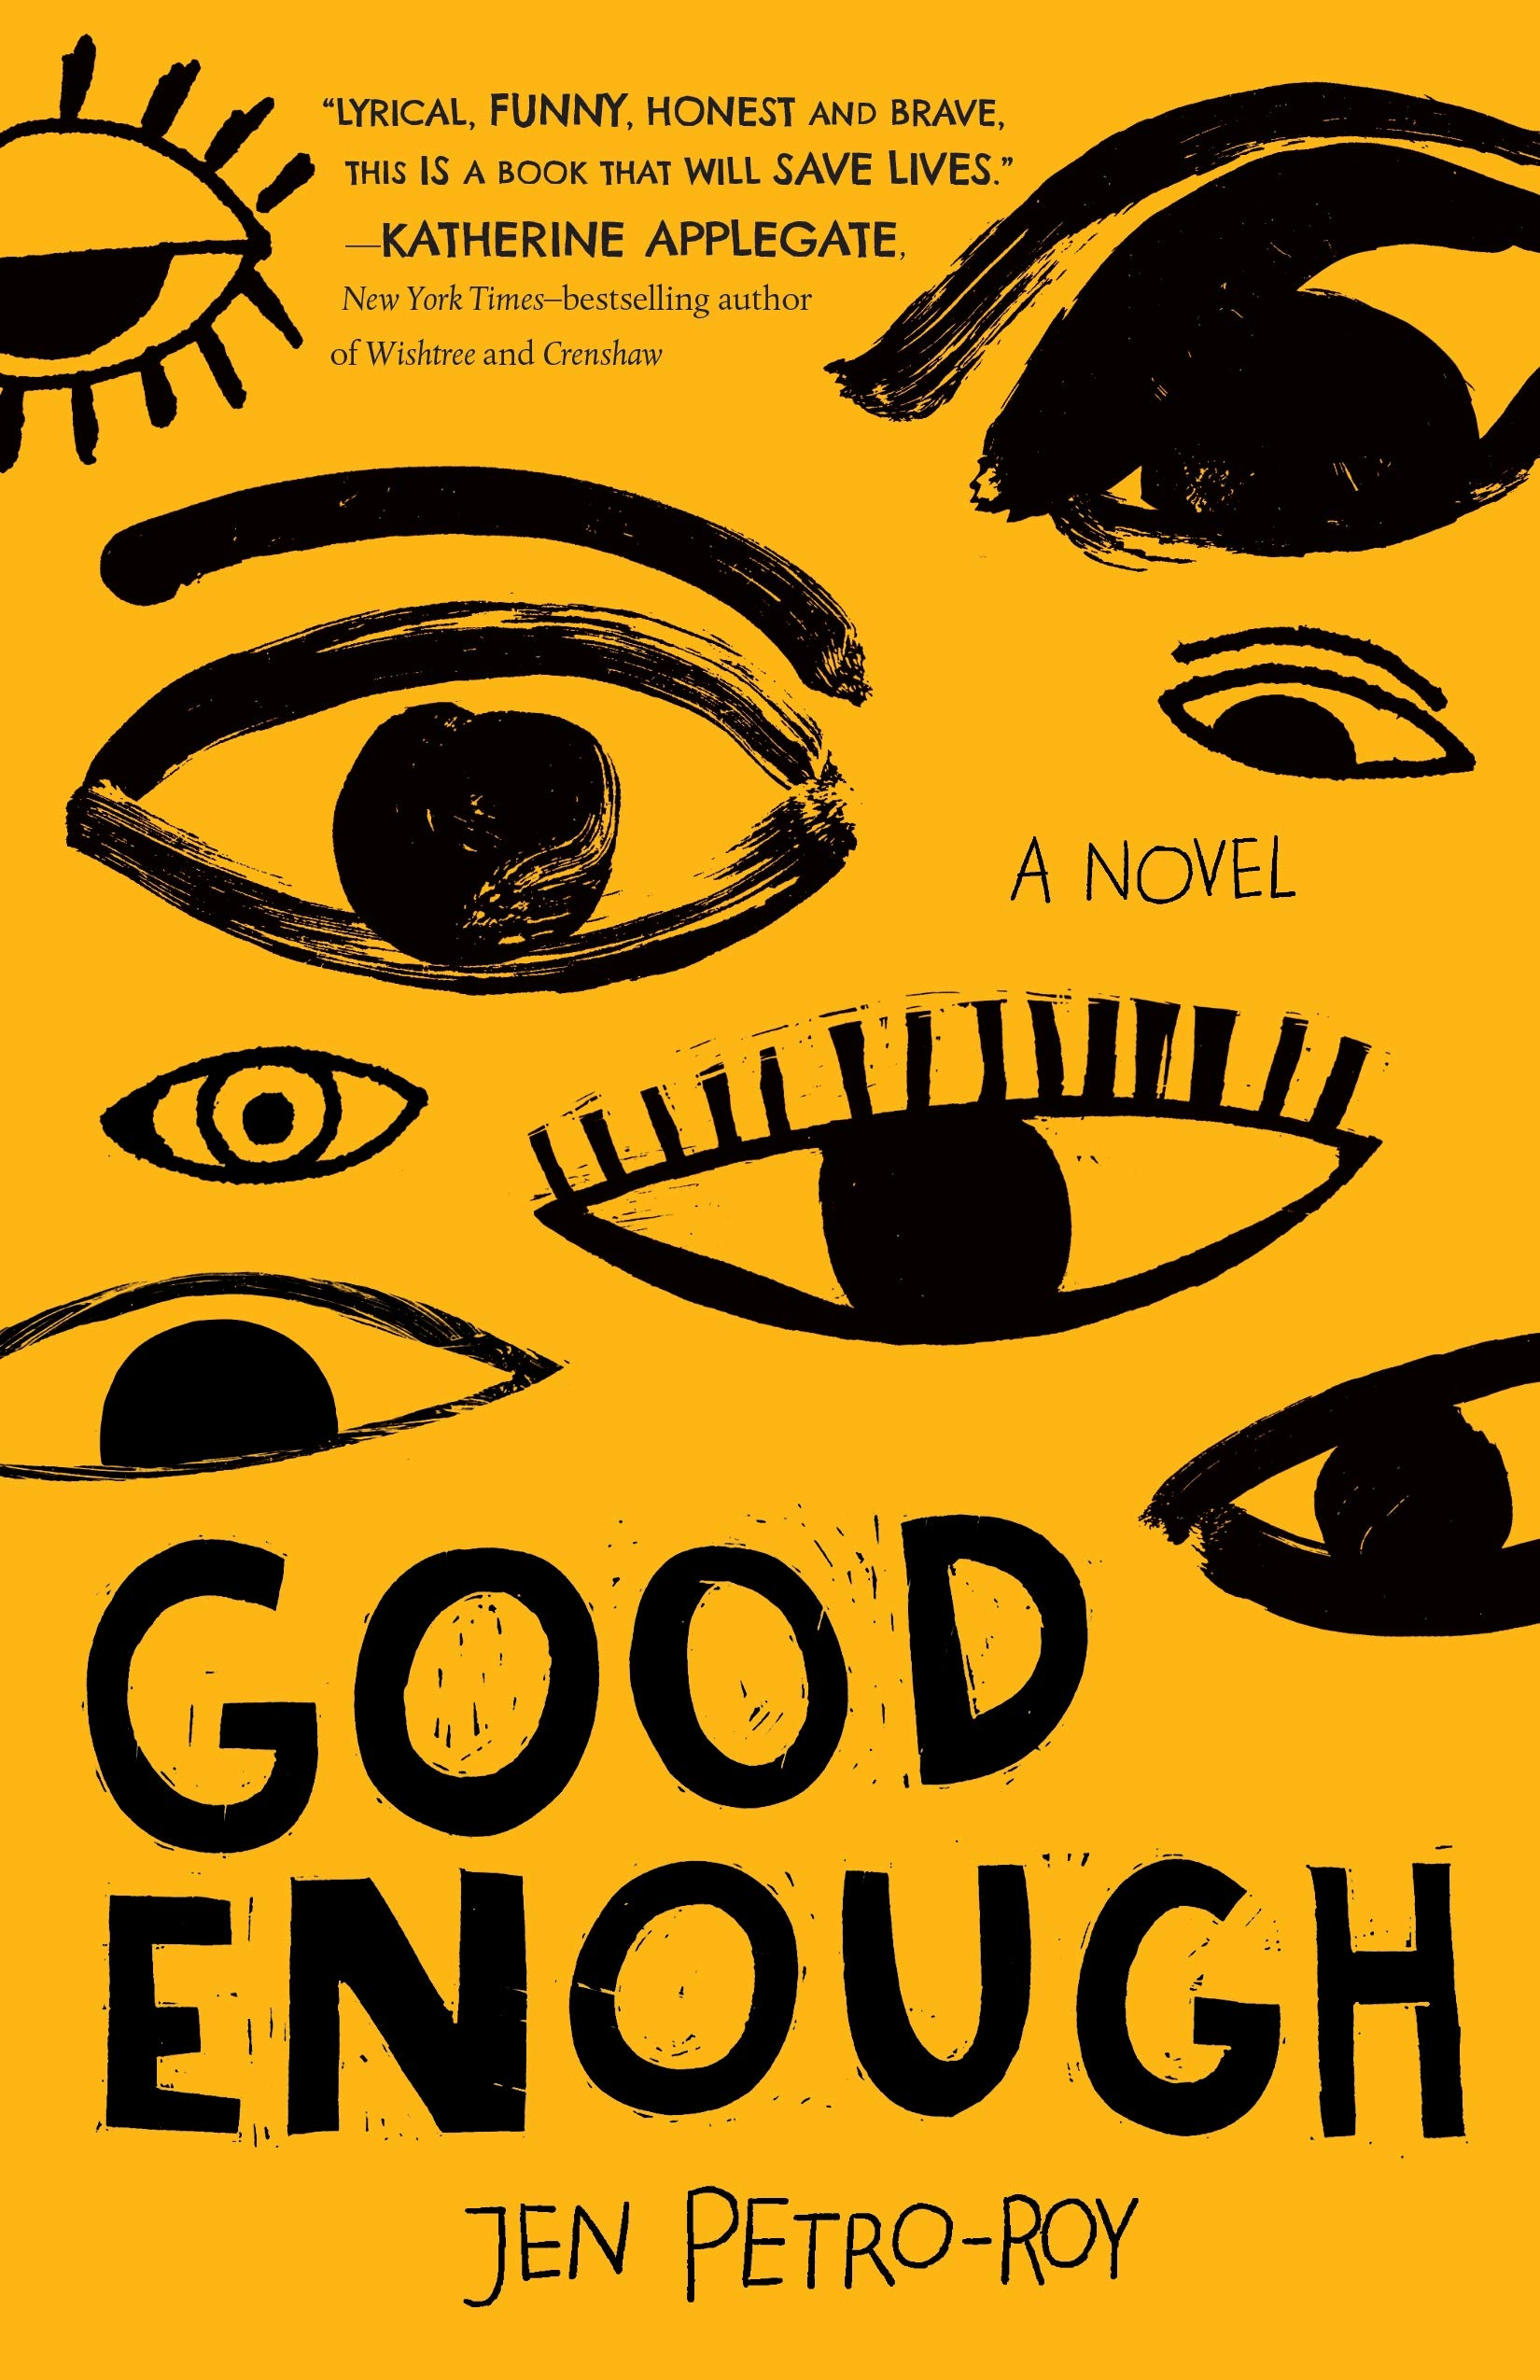 Cover art for the book entitled Good Enough